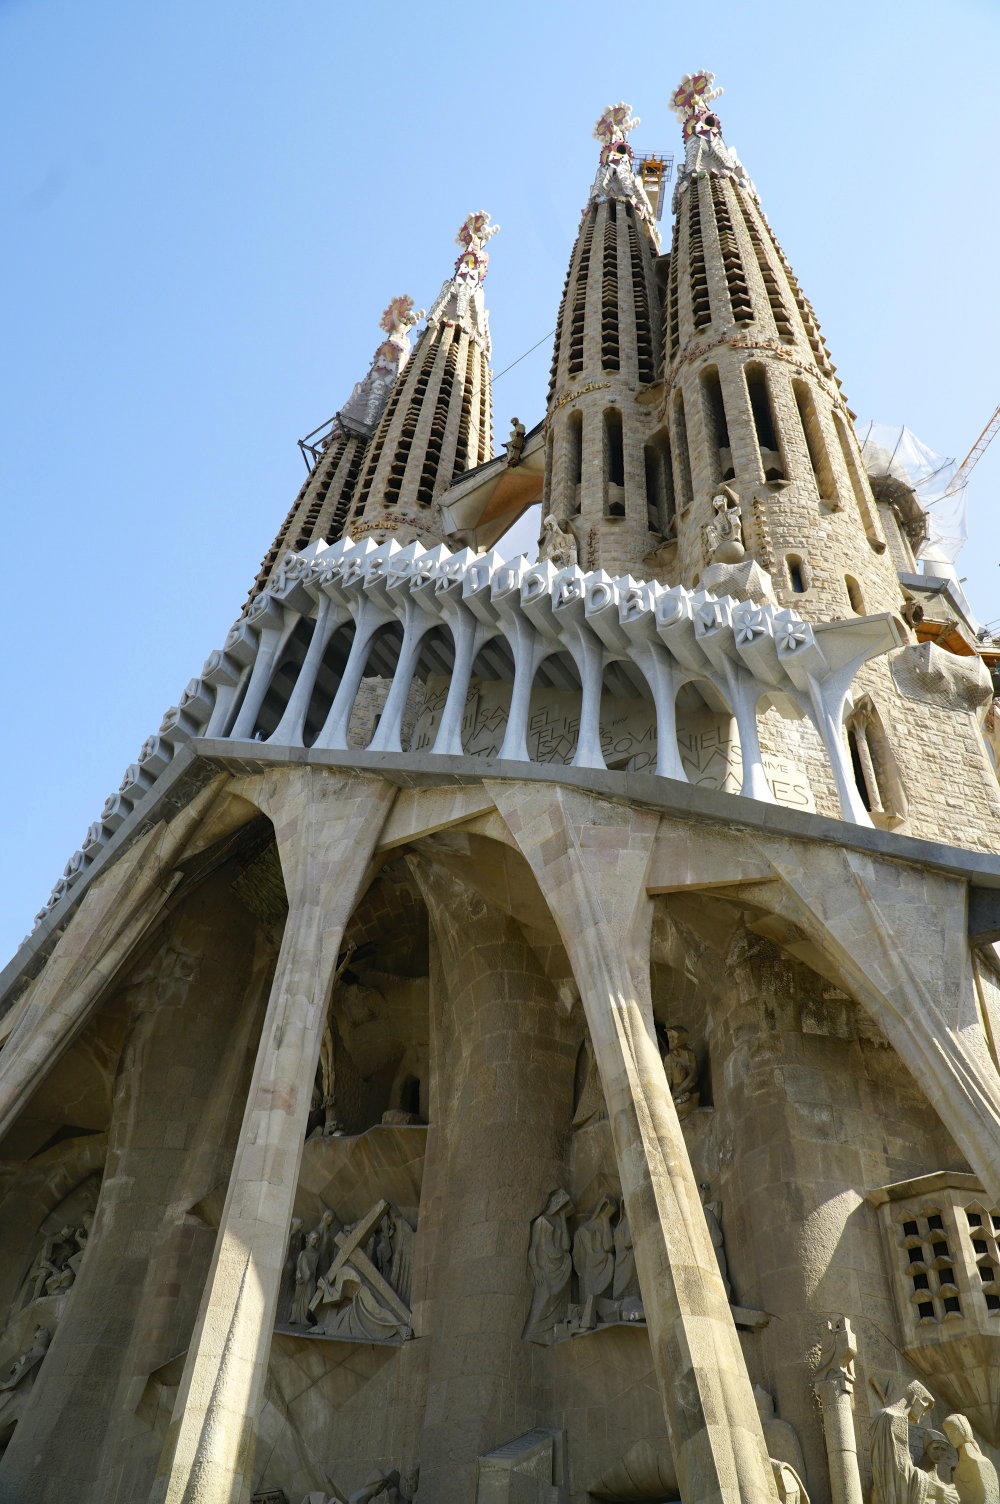 Looking up at the Sagrada Familia by Gaudi.